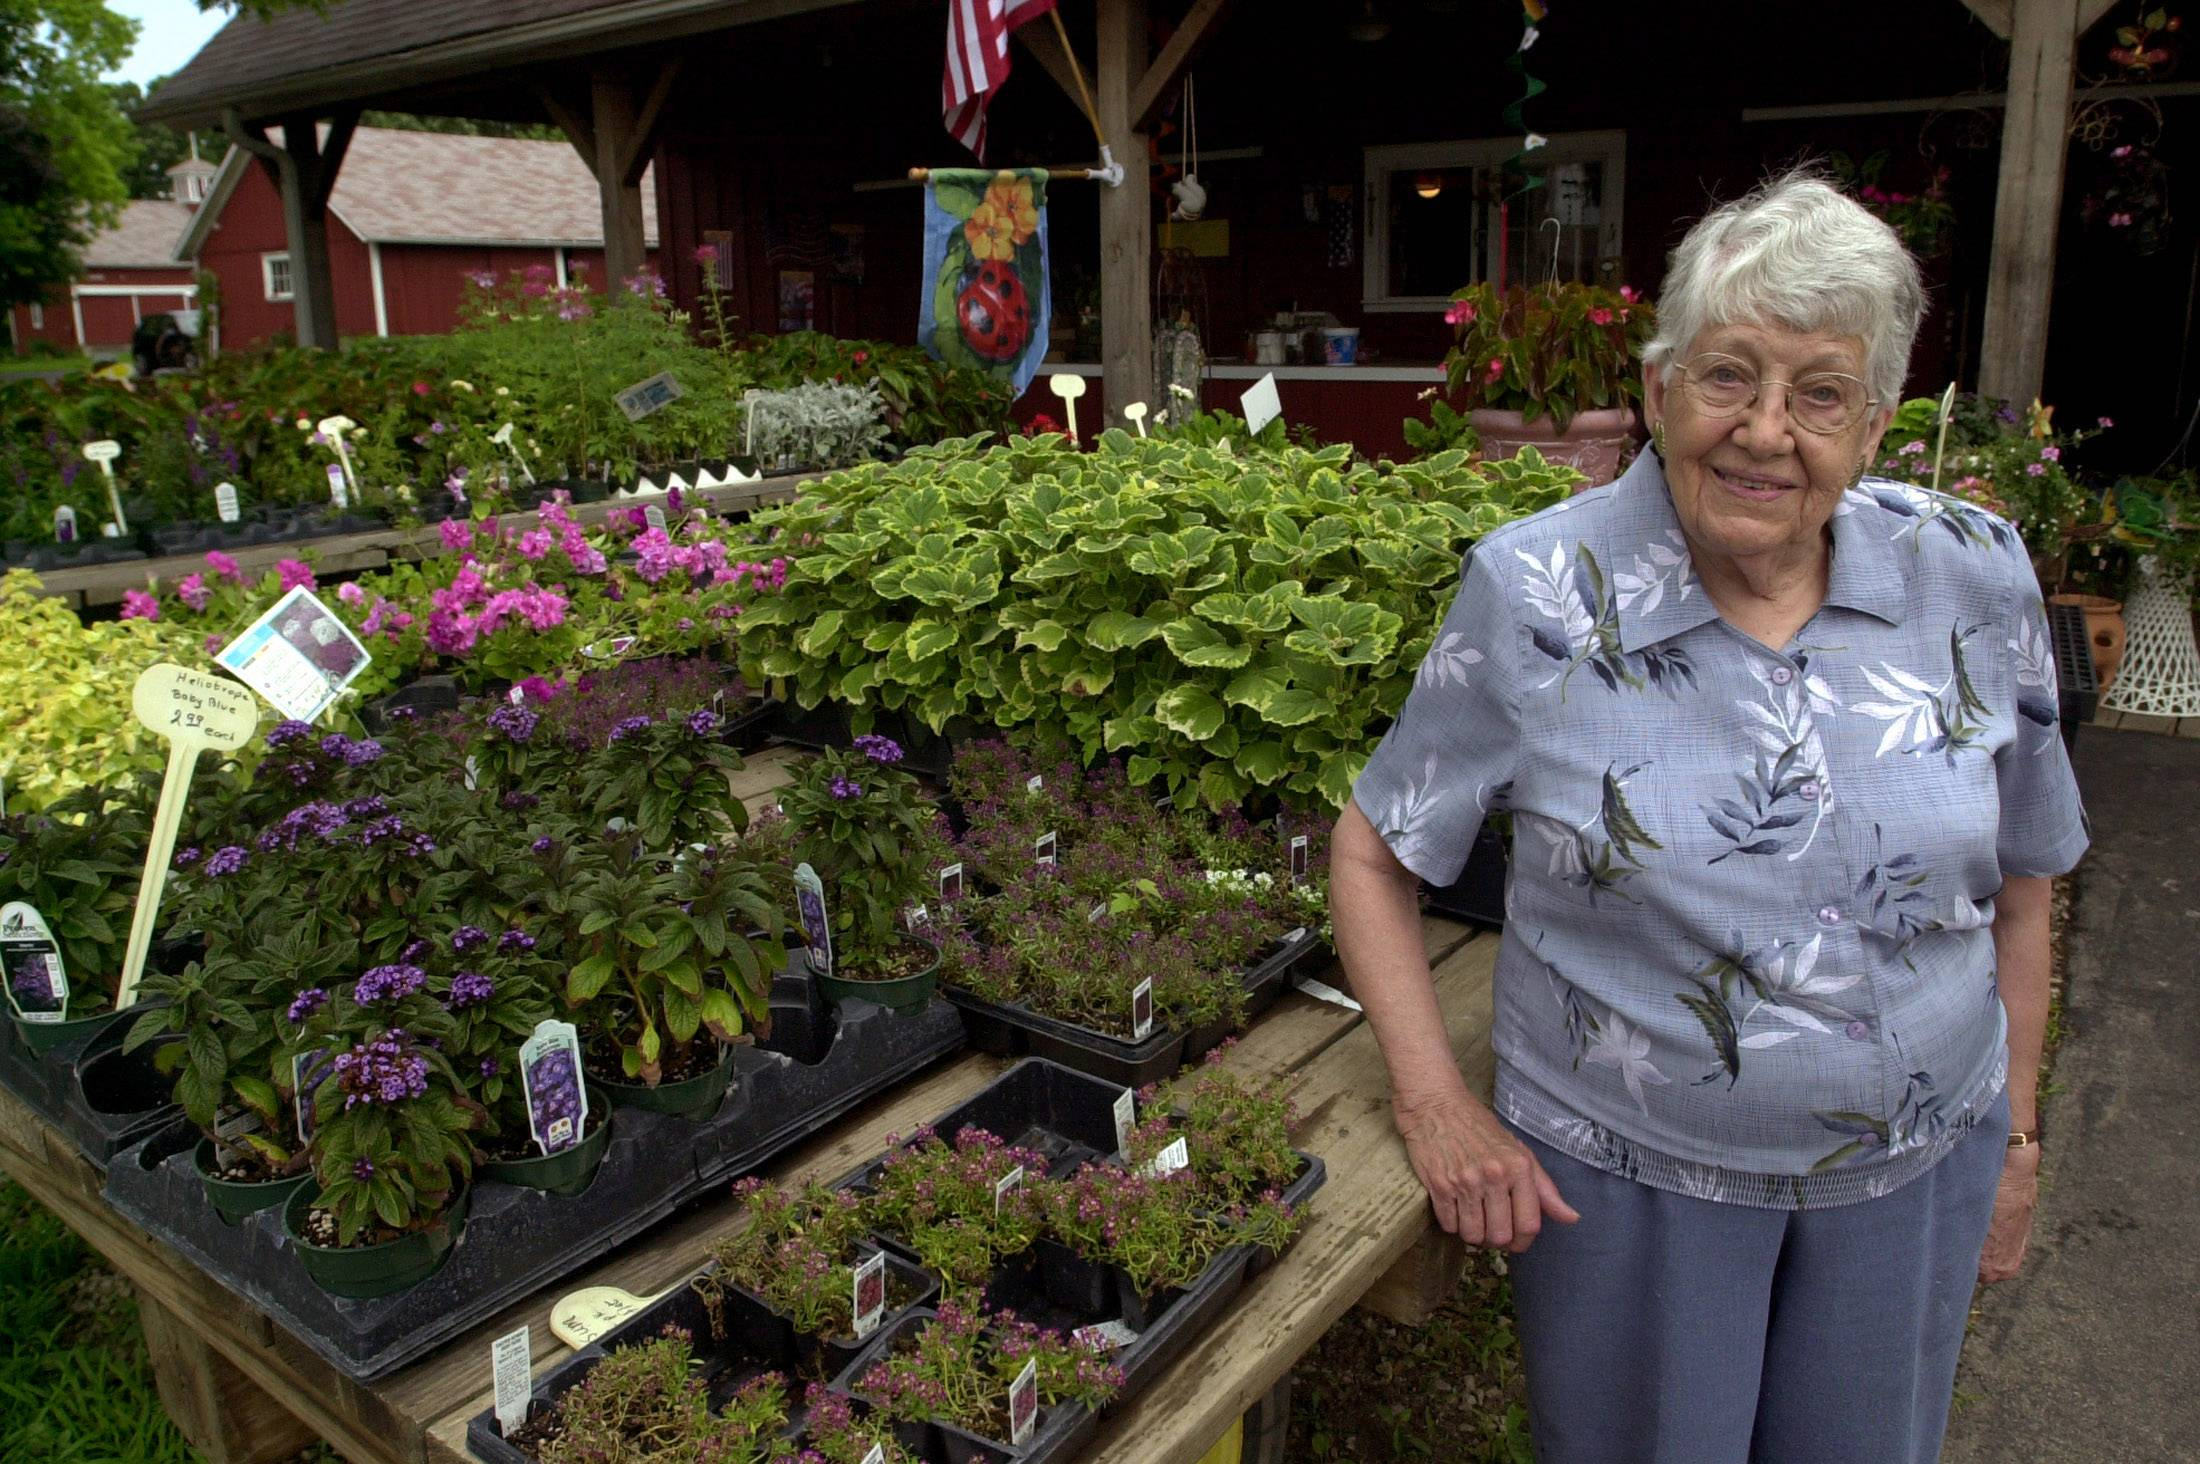 Remembering the matriarch of Sonny Acres